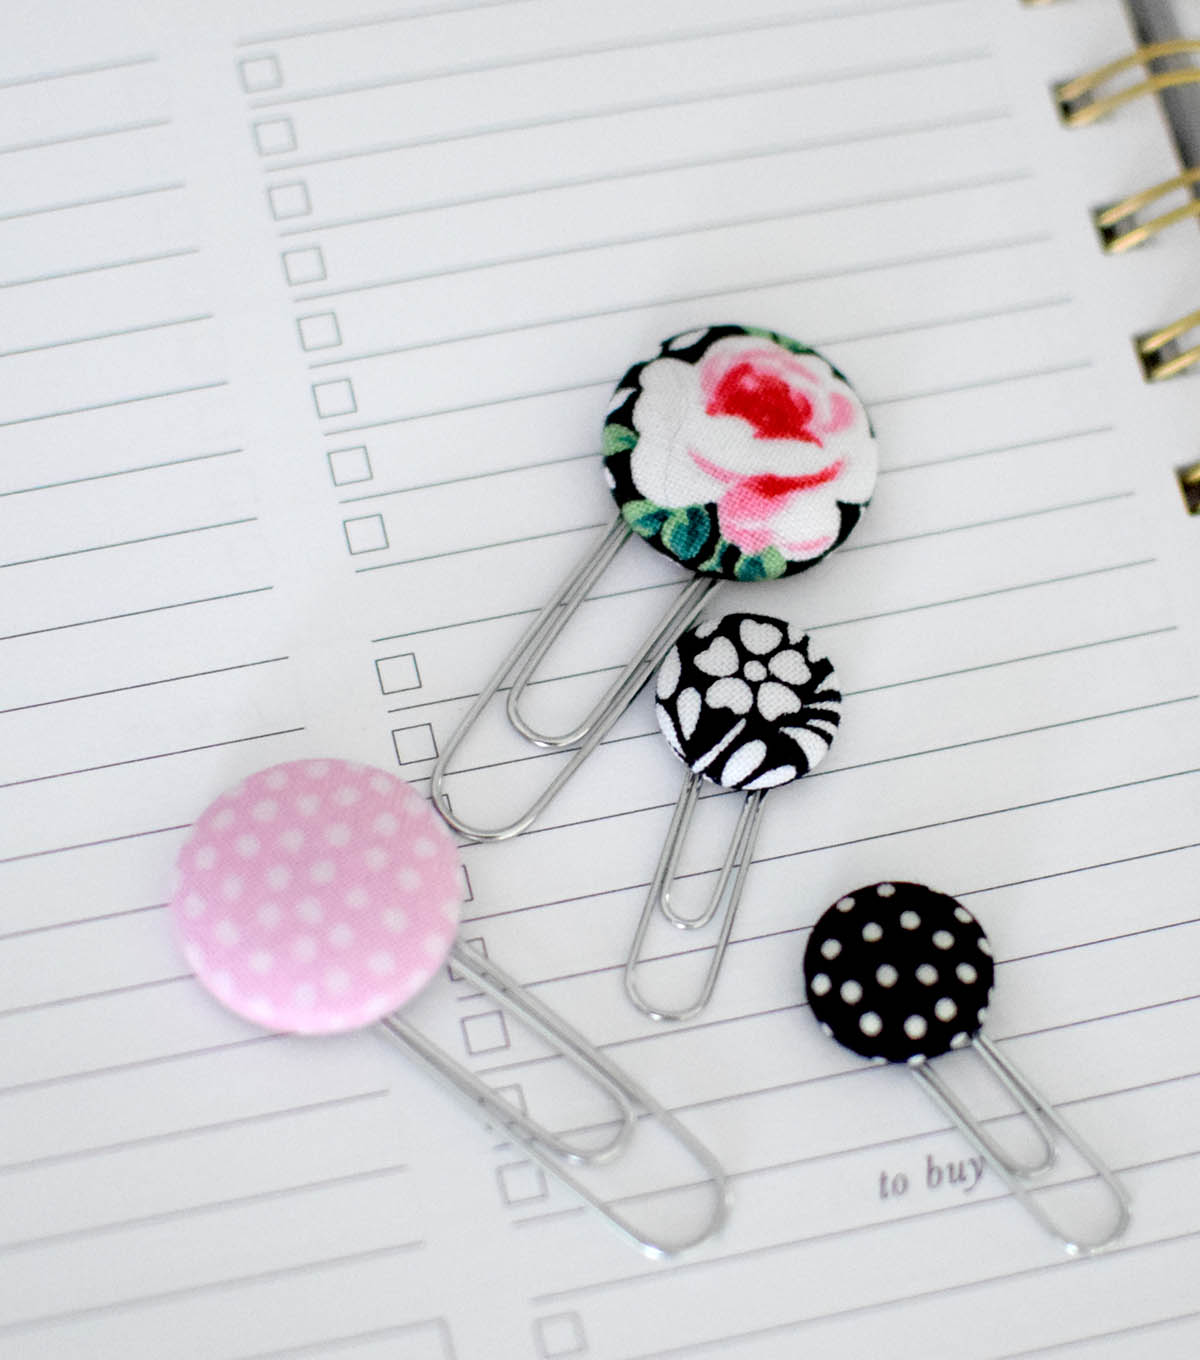 Diy Cover Button Paperclips Paperclip Crafts Joann